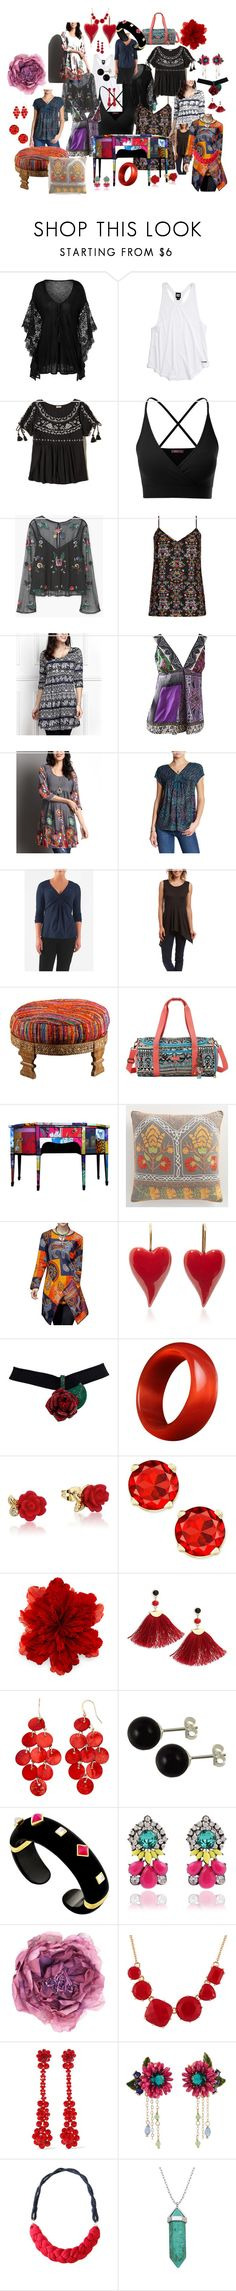 """""""Truly Bazaar"""" by billiej-712 ❤ liked on Polyvore featuring Ivy Park, Hollister Co., Doublju, MANGO, City Chic, R&B, Etro, Reborn, Lucky Brand and Casa Lee"""